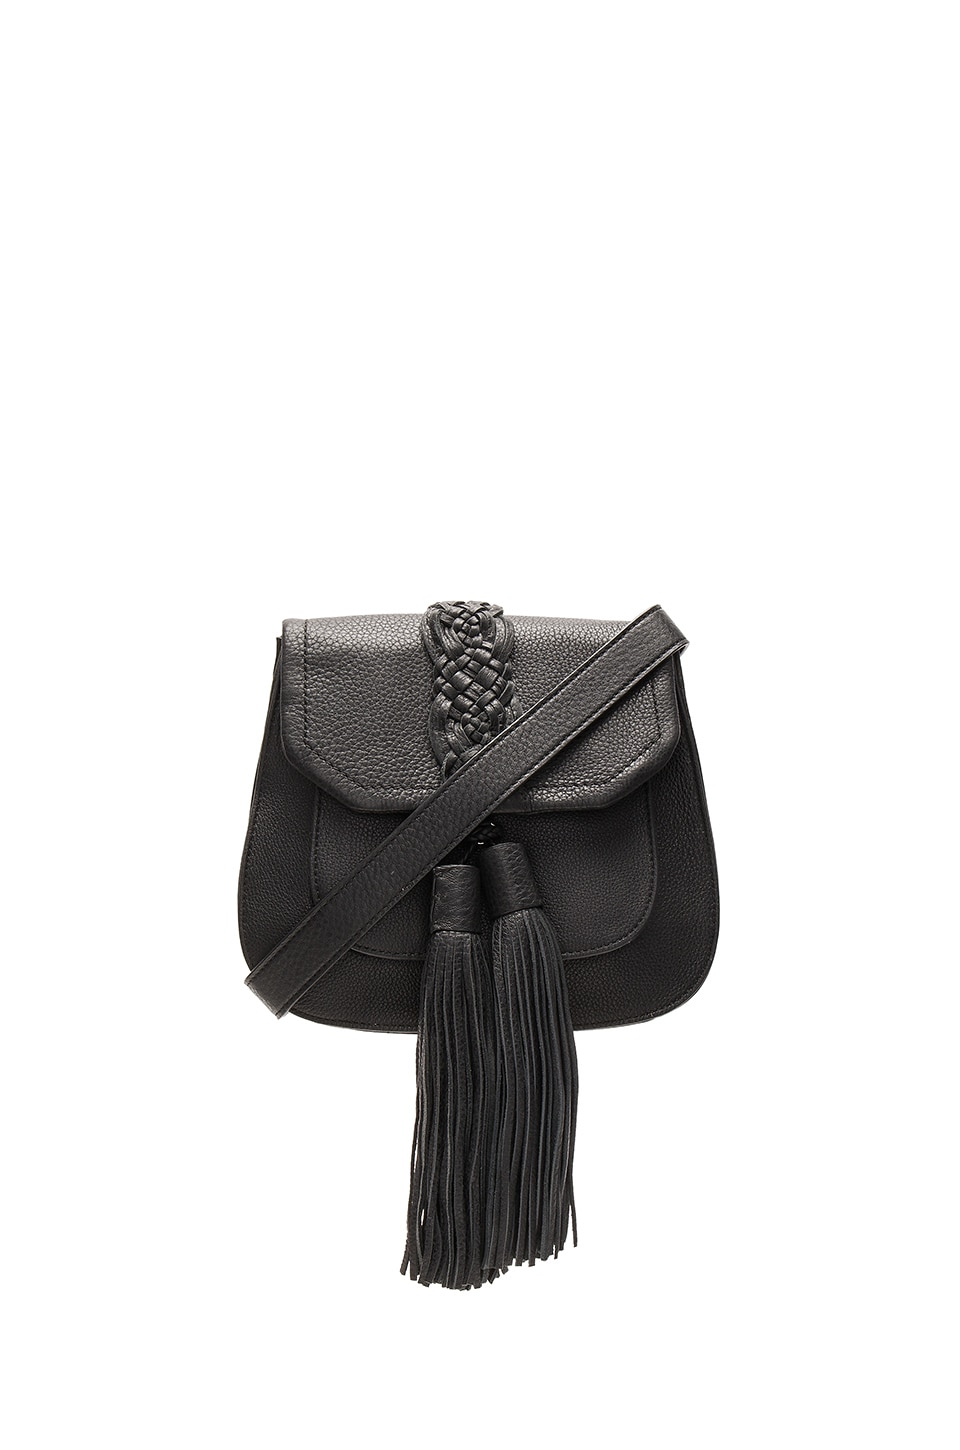 Isobel Saddle by Rebecca Minkoff